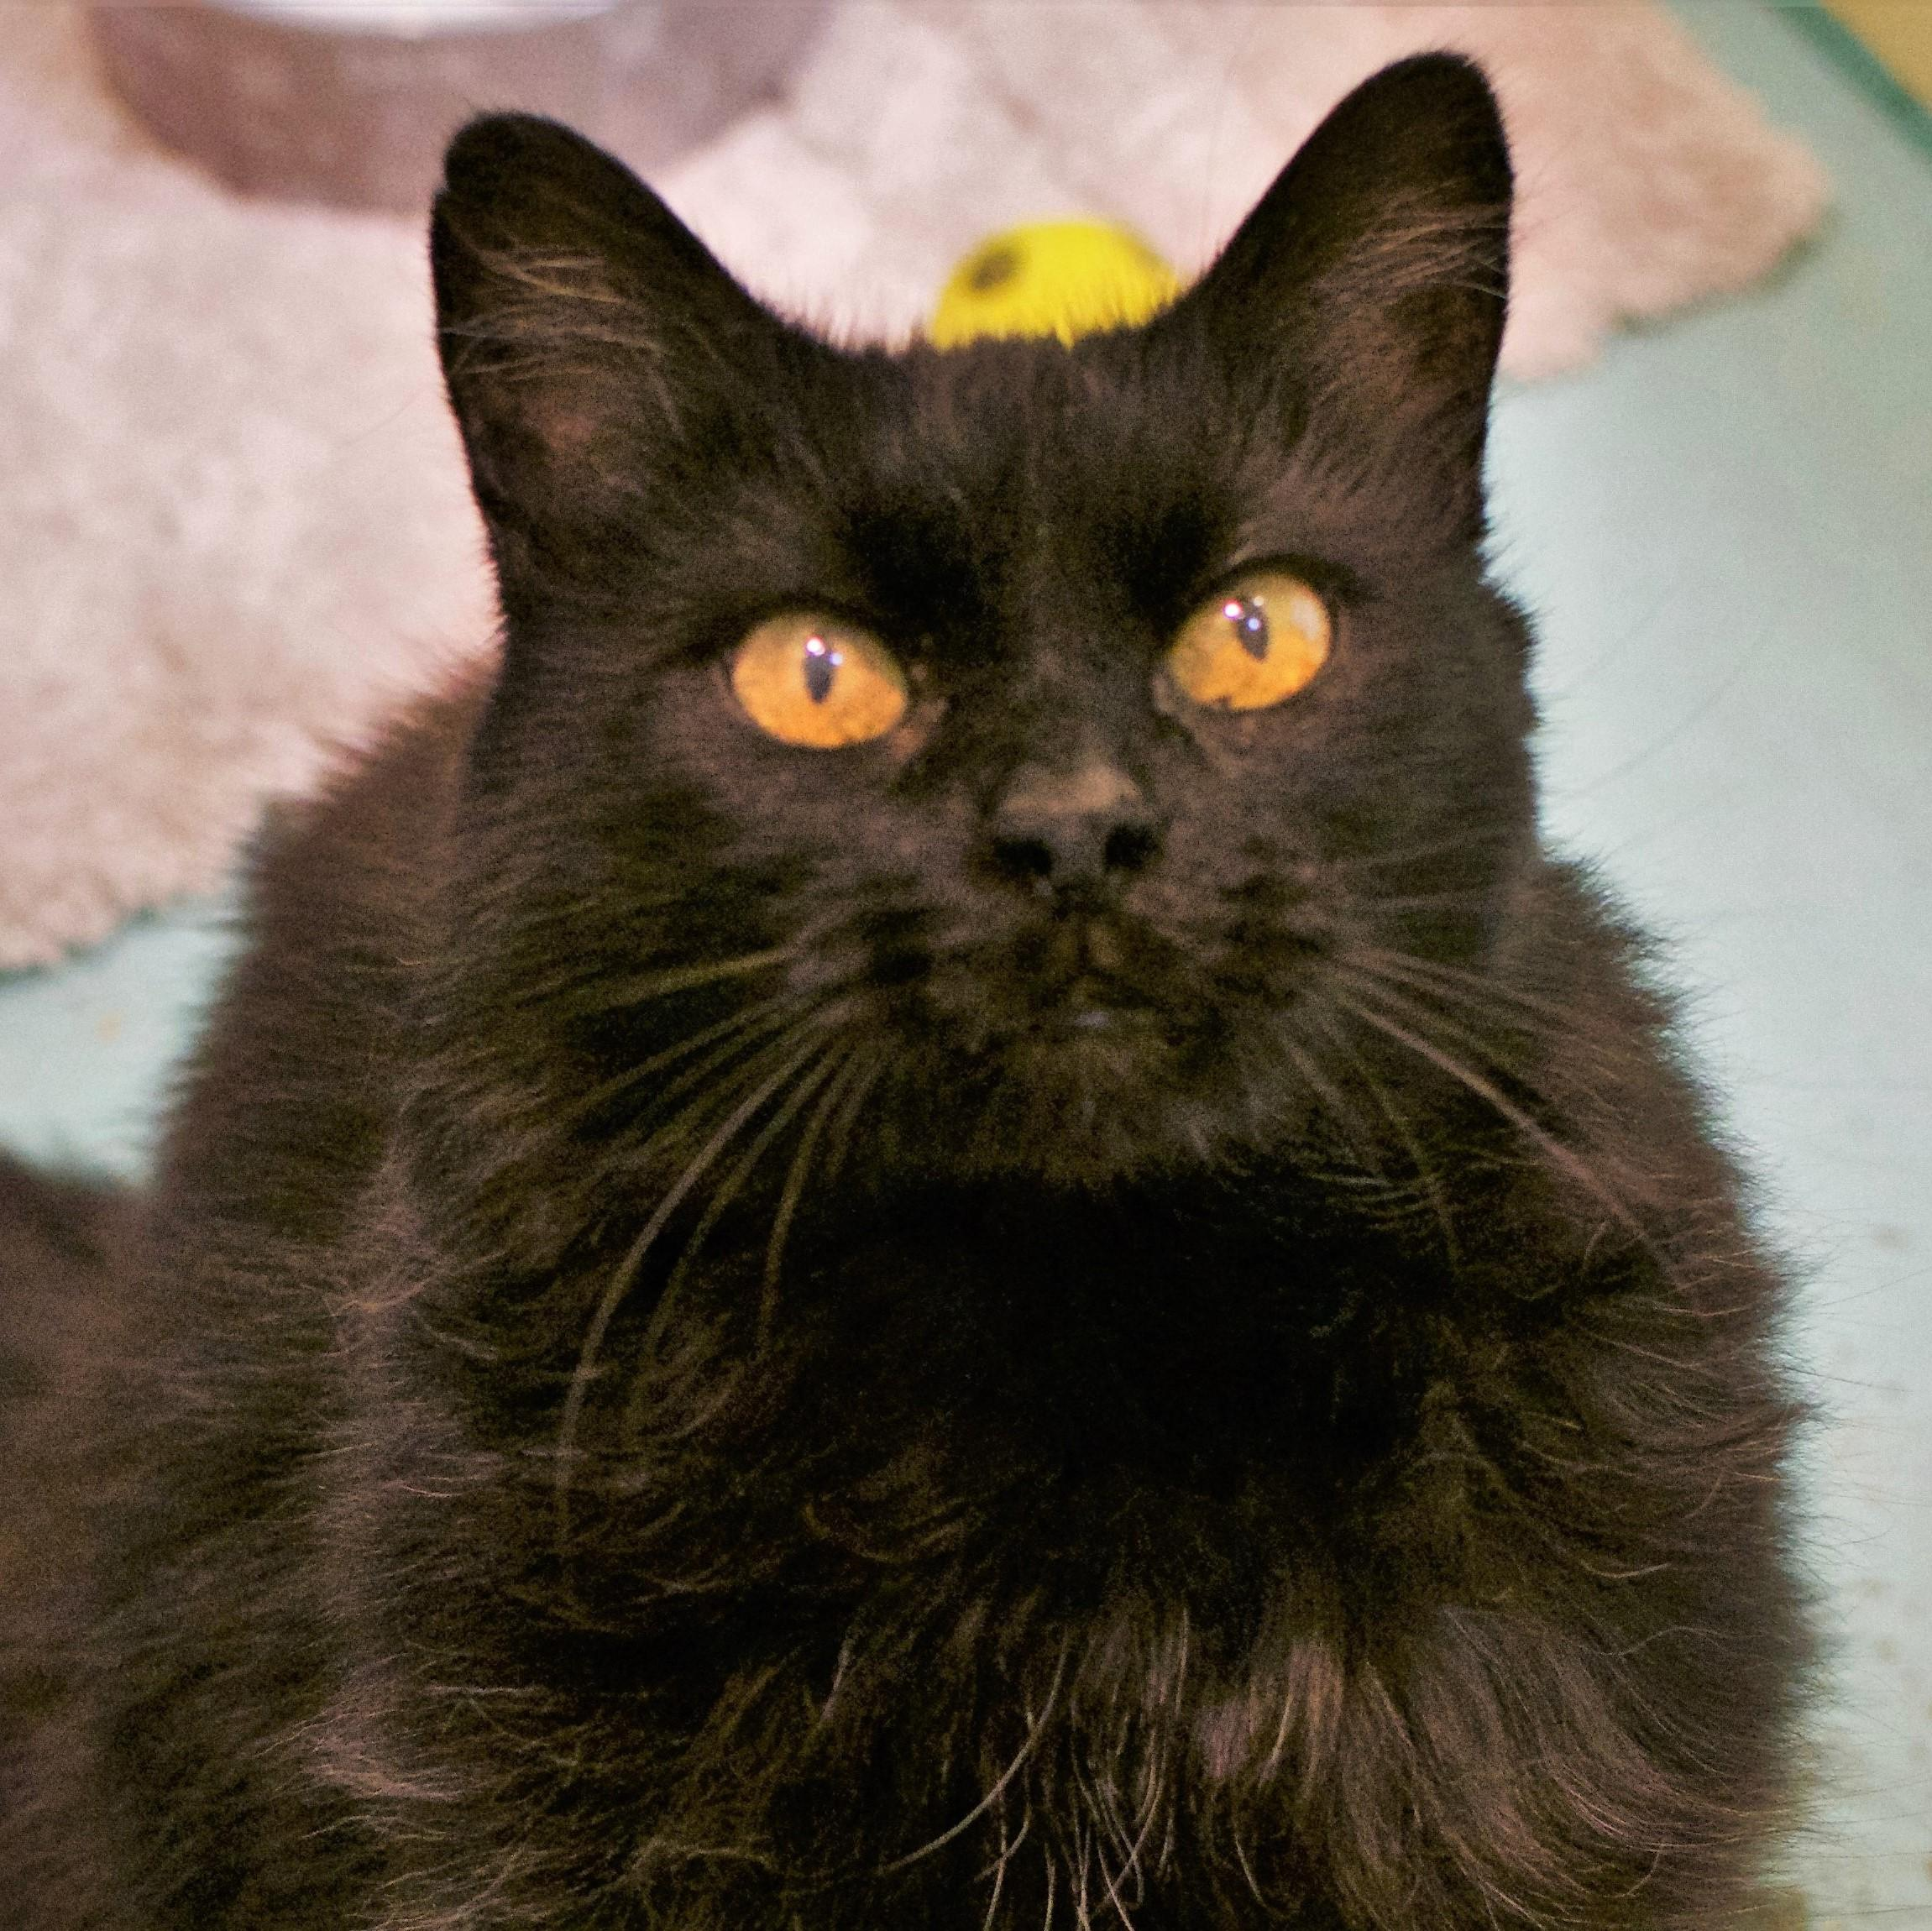 Hi friends, I'm Sassafrass – a petite, 12-year-old domestic medium-haired lady looking for a quiet, calm home to call my own. Chin rubs and playing fetch are two of my favorite things - I also have an independent side so I'm the perfect combination! Is your family of teens and adults missing a loyal, lovable companion? It's me! Visit soon!